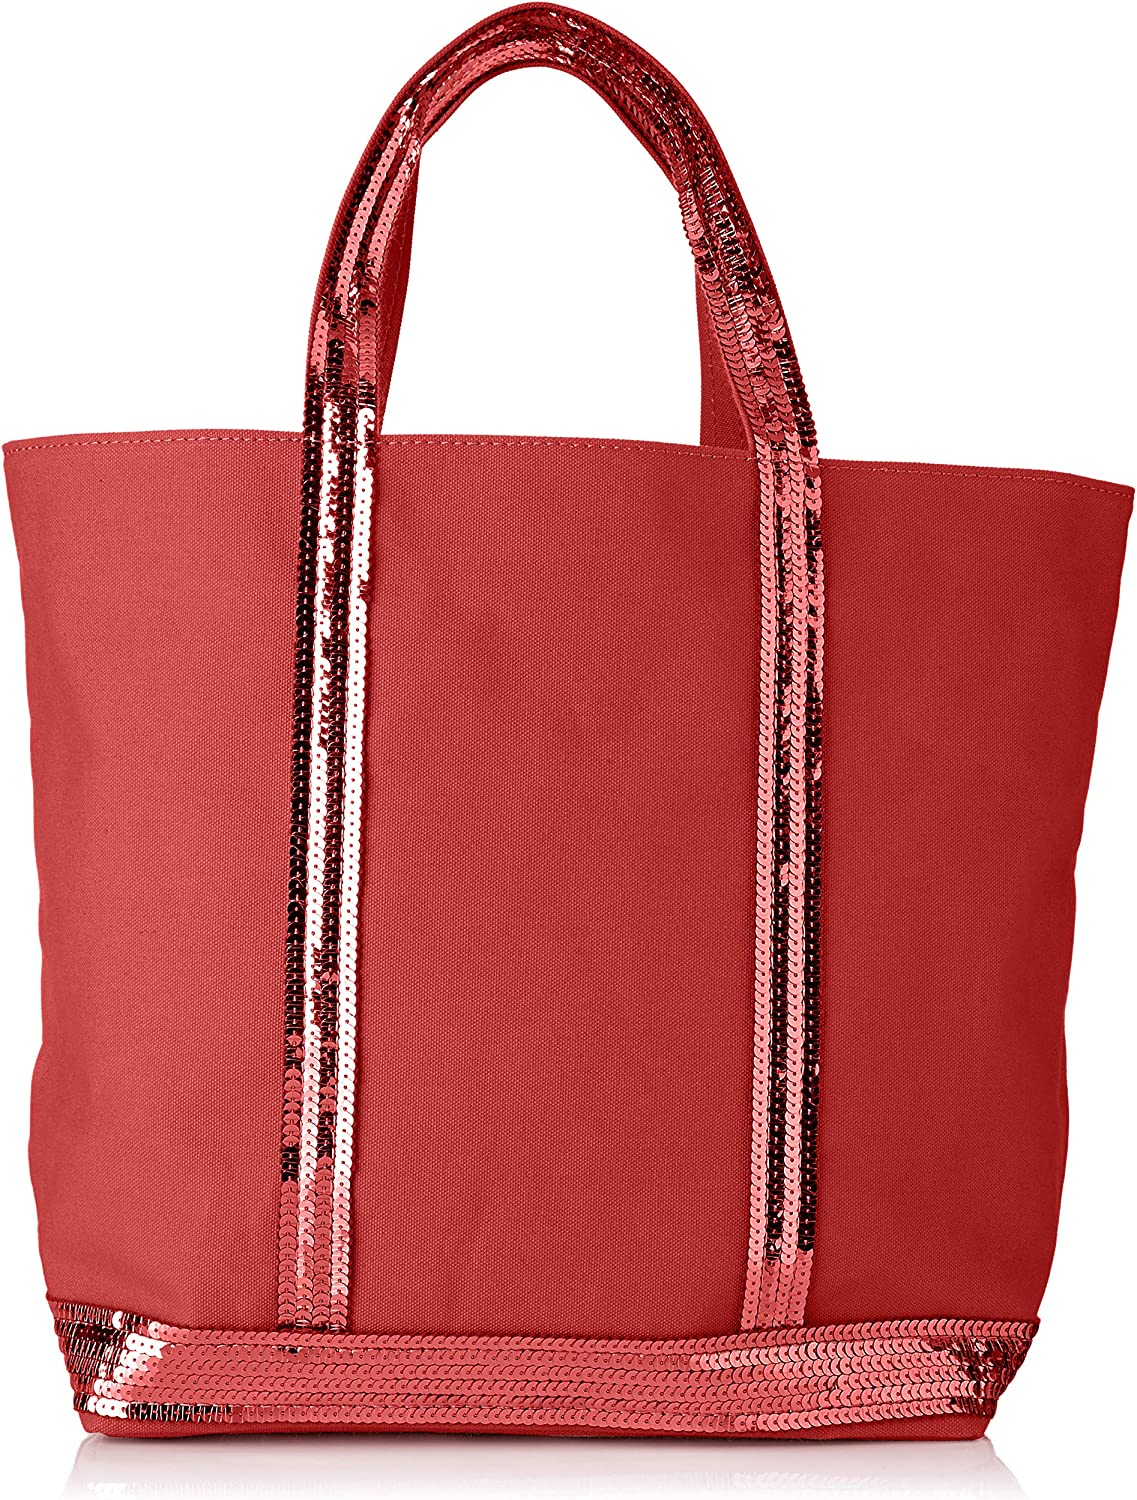 VANESSA BRUNO Women's Cabas Medium Coton Et Paillettes Tote